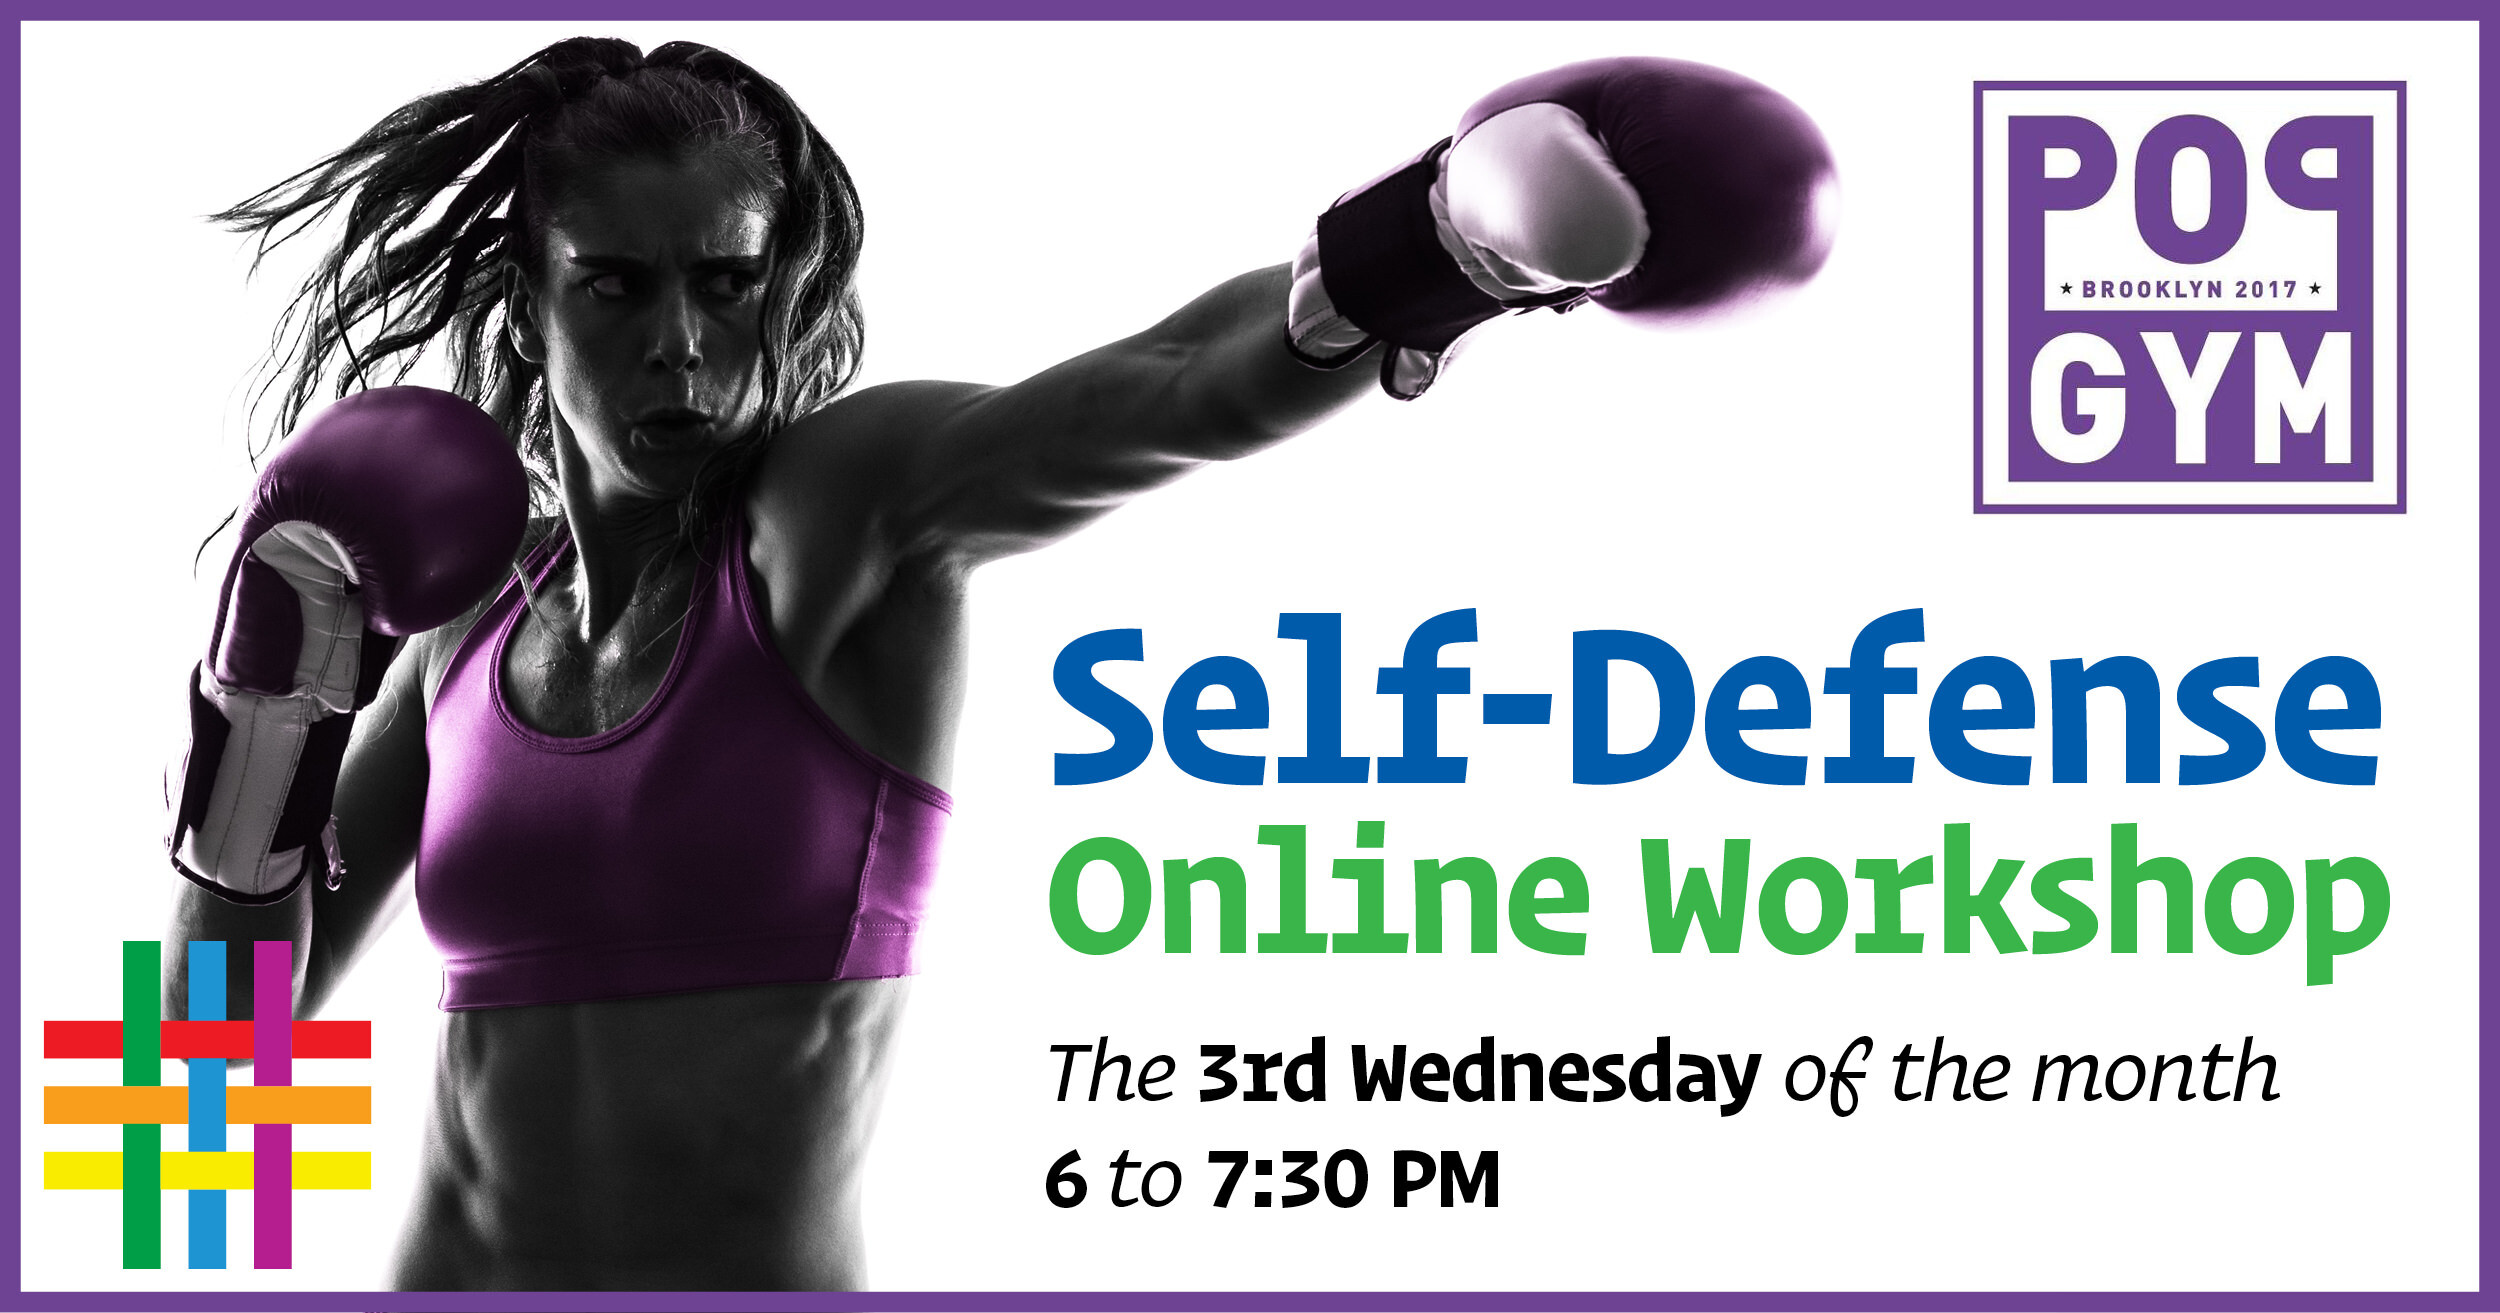 Self-Defense Online Workshop at Brooklyn Community Pride Center